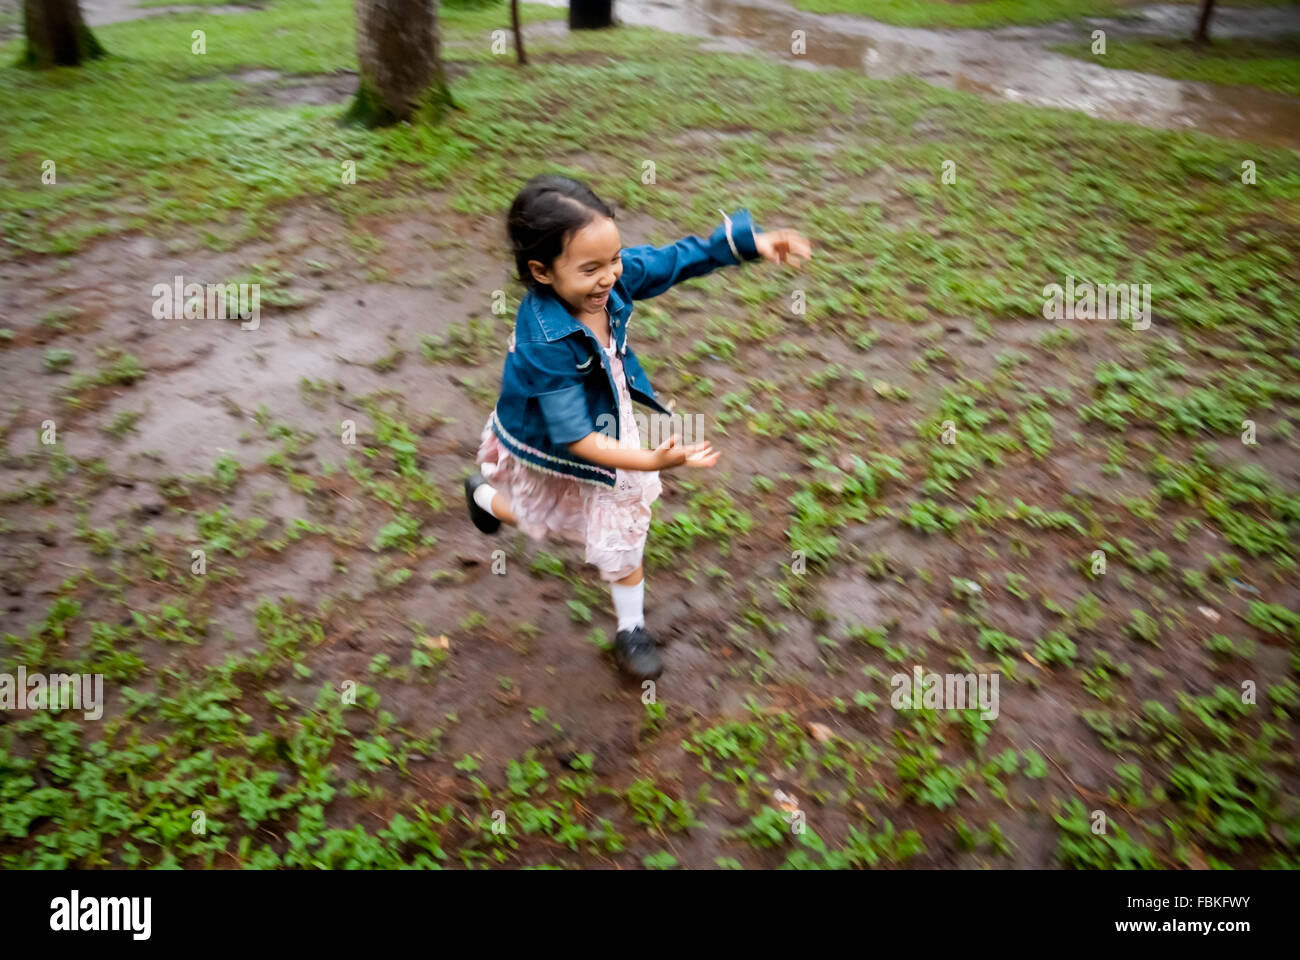 Little girl running happily in a muddy park after it had rained. - Stock Image